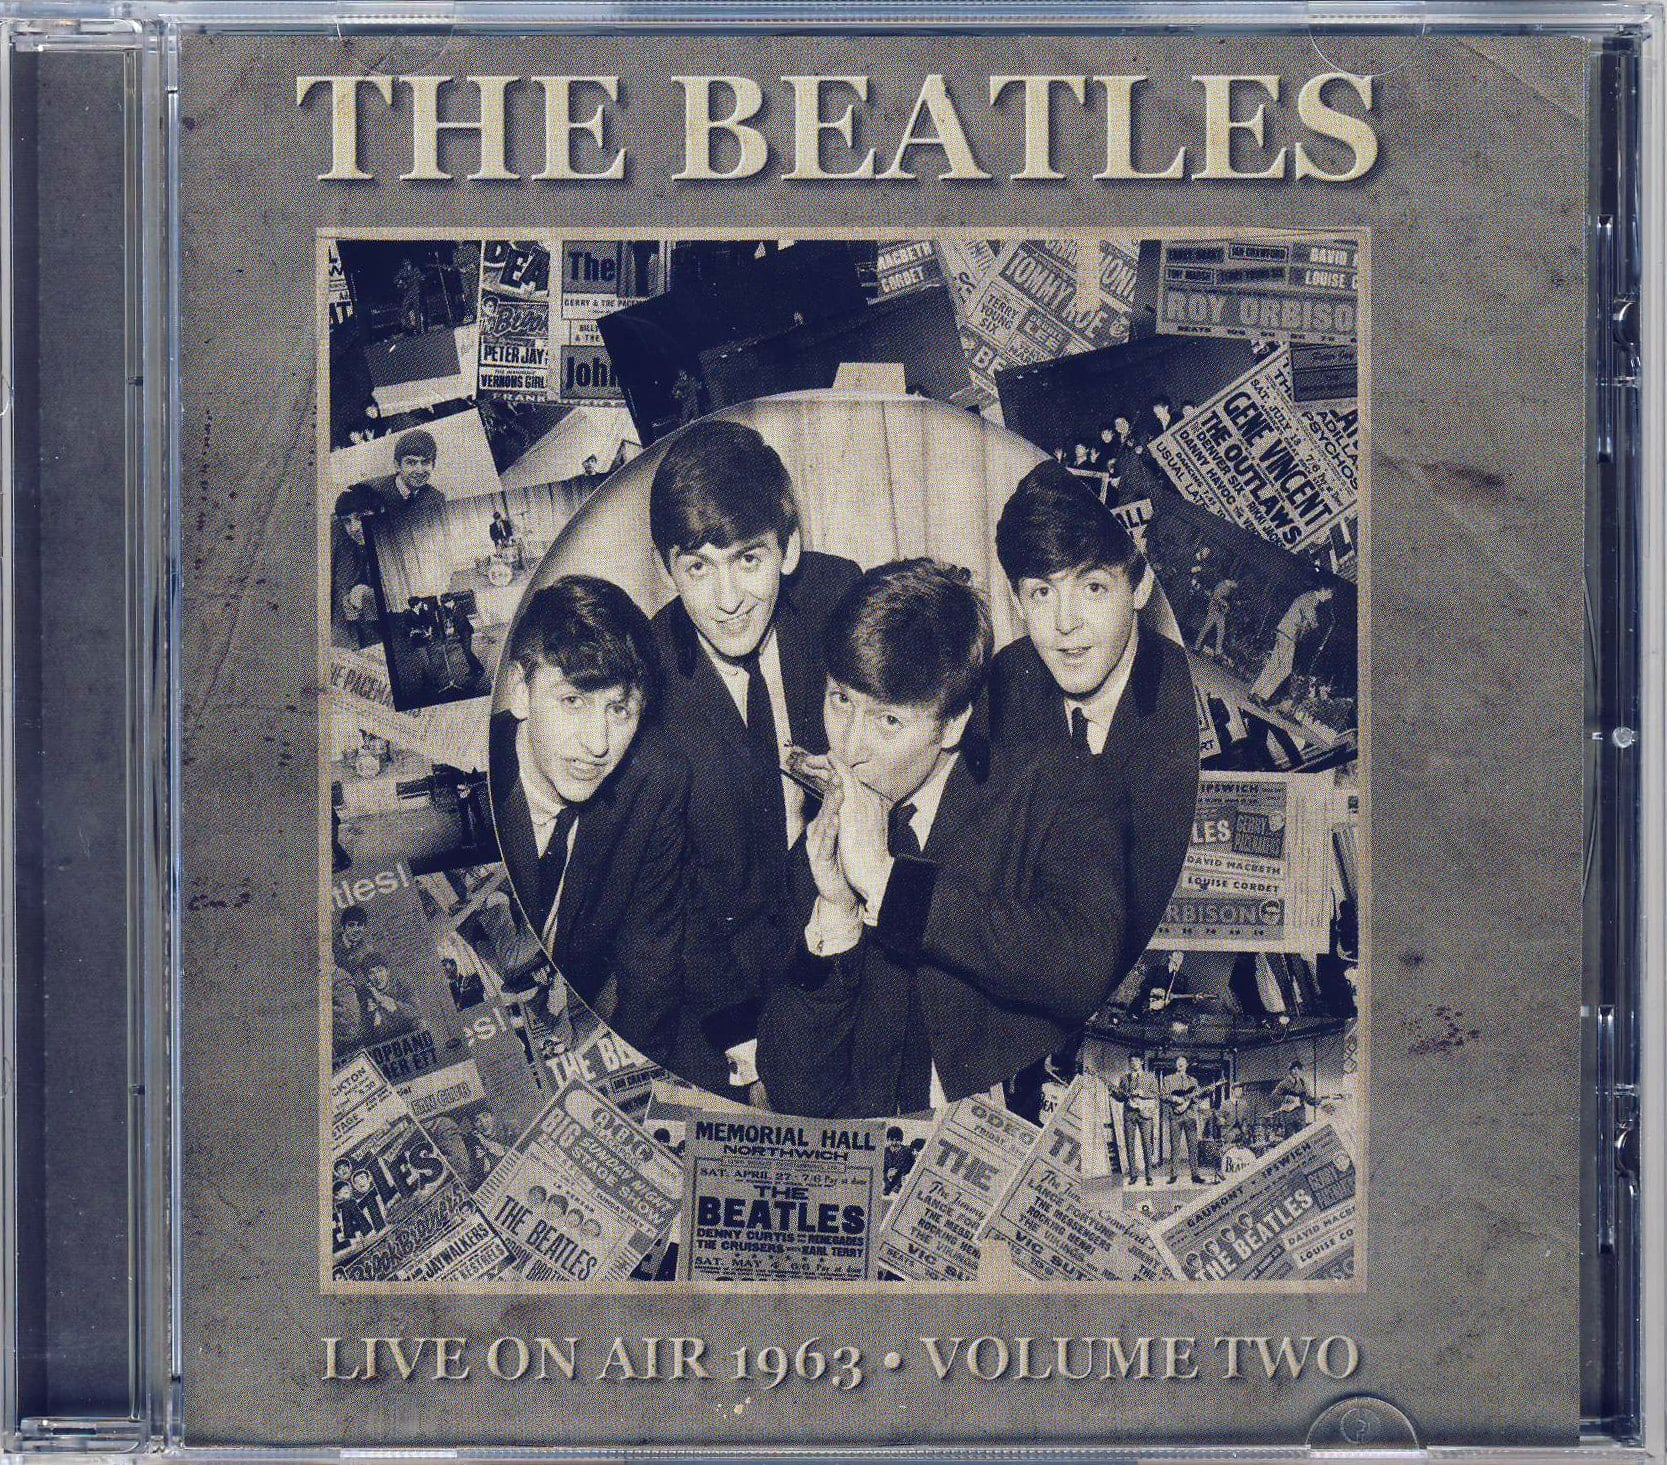 THE BEATLES: CD LIVE ON AIR 1963 - VOLUME TWO (jewel case)